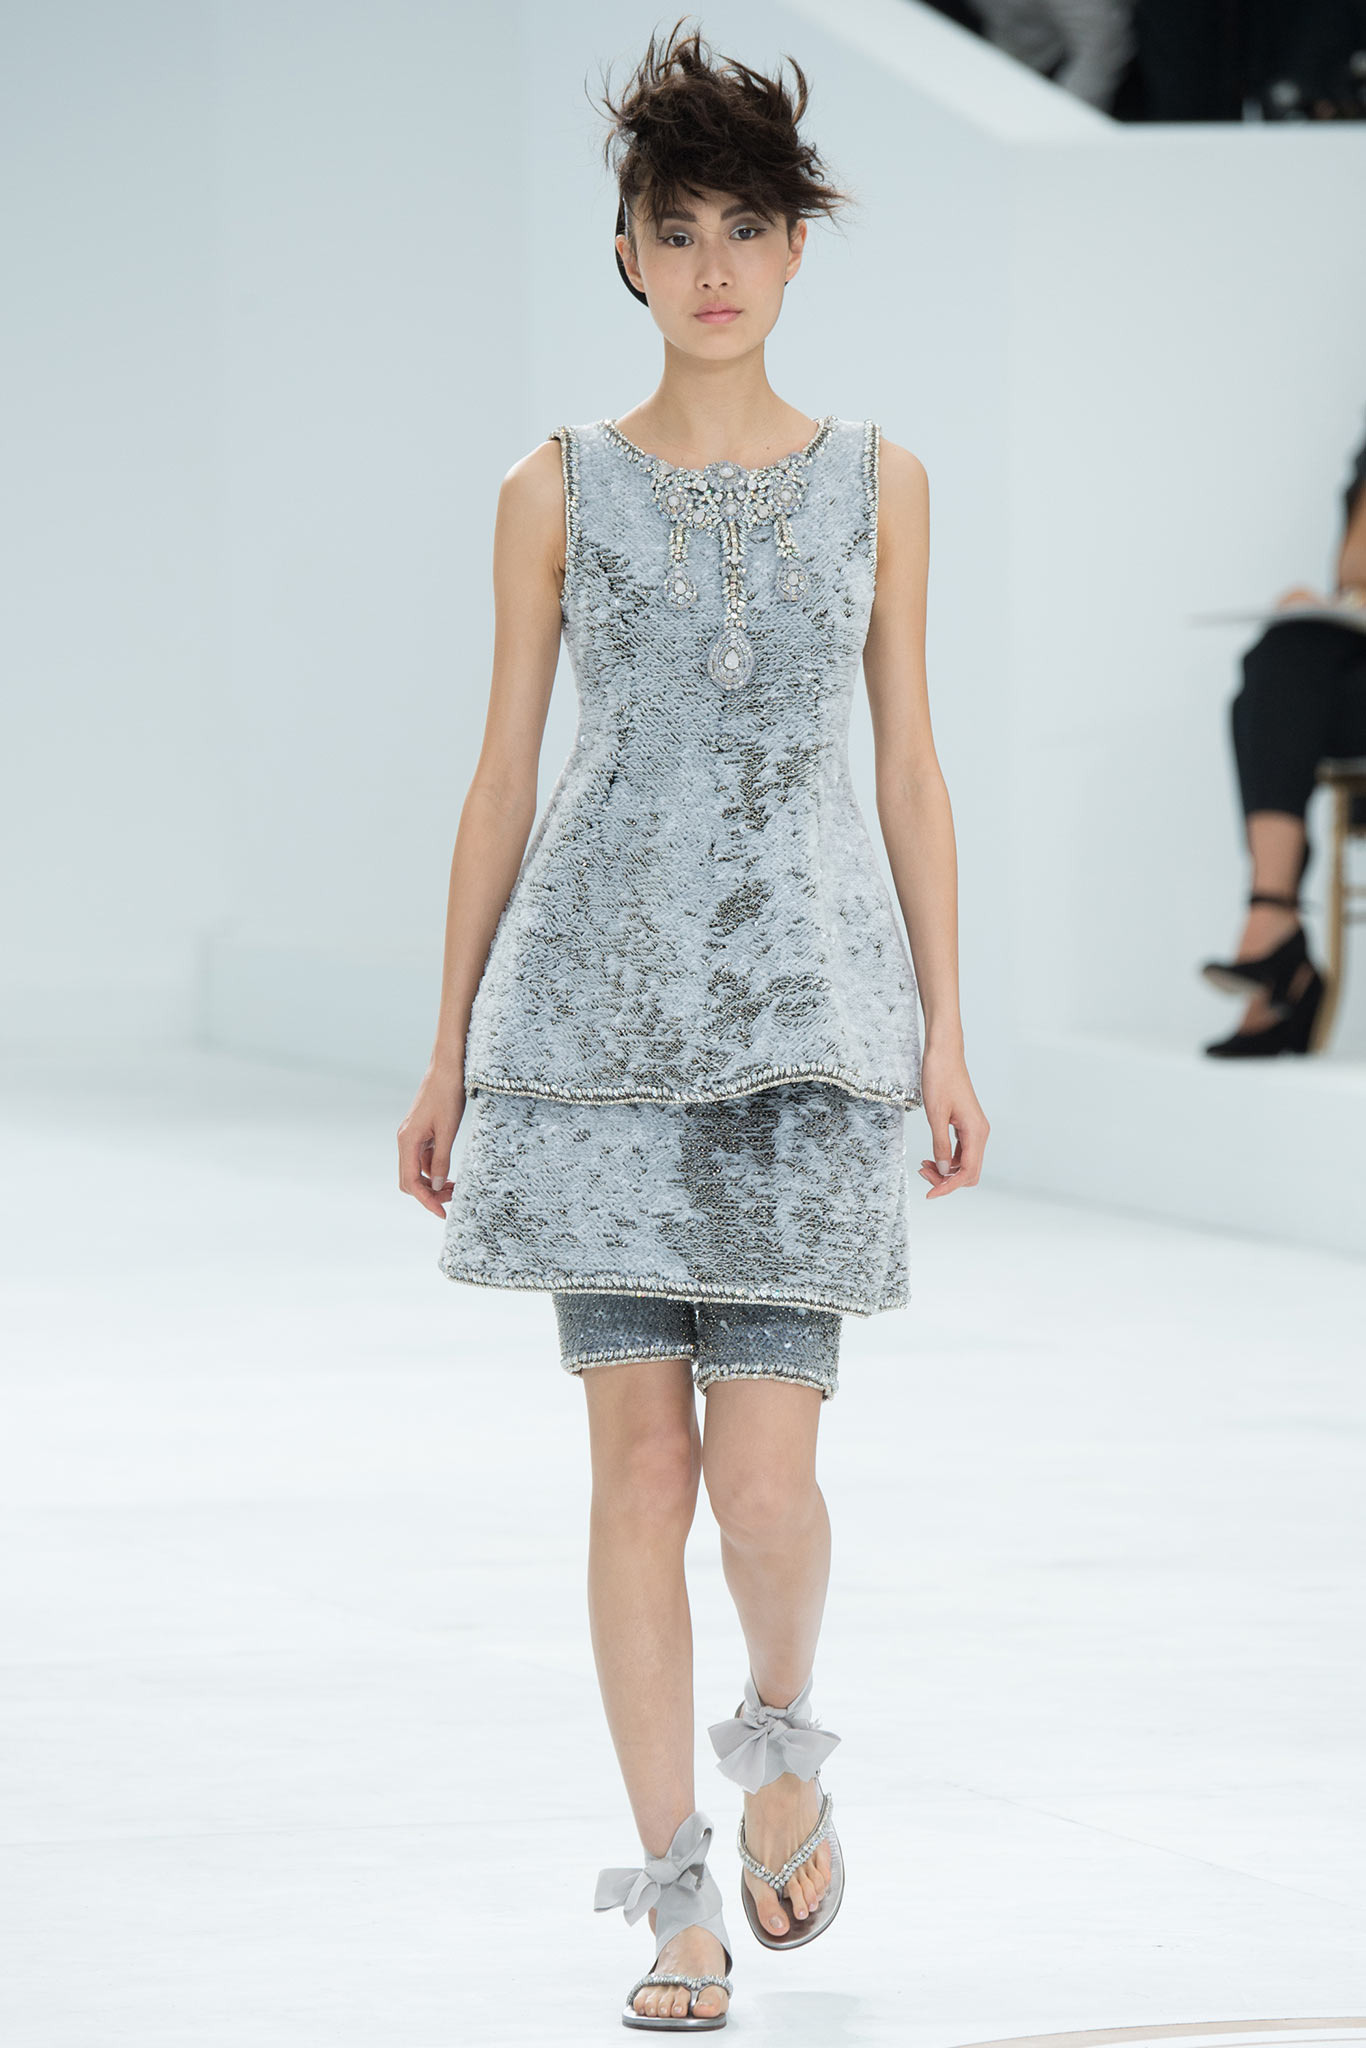 Shu-Pei Qin | Chanel Fall 2014 Couture (Photography: Kim Weston Arnold / Indigitalimages.com via Style.com)